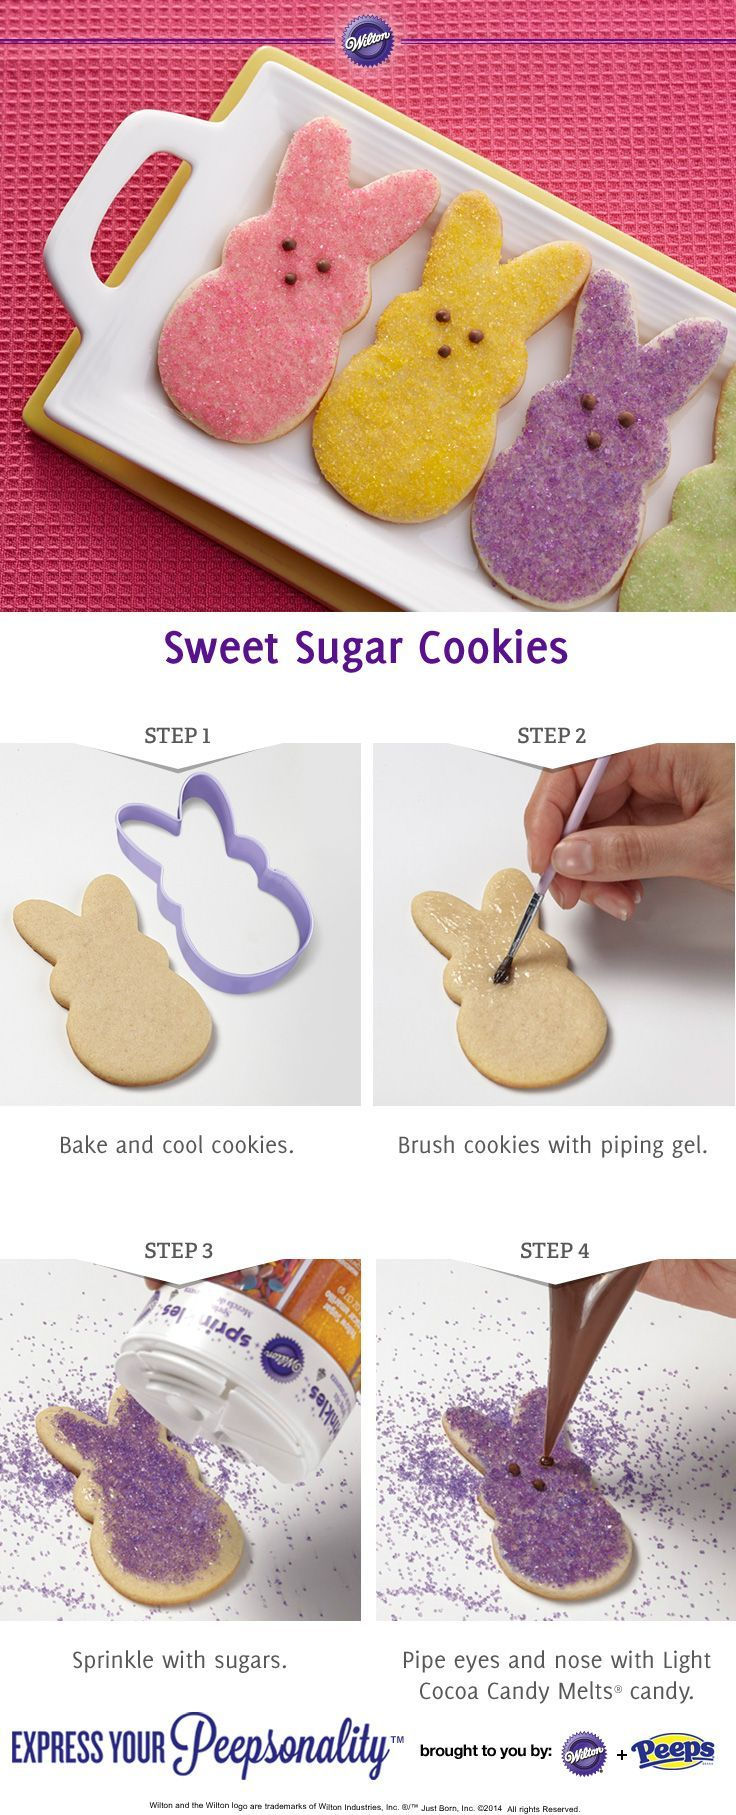 How to make Peeps Sugar Cookies from @Wilton Cake Decorating Cake Decorating | Find Wilton products at http://Joann.com